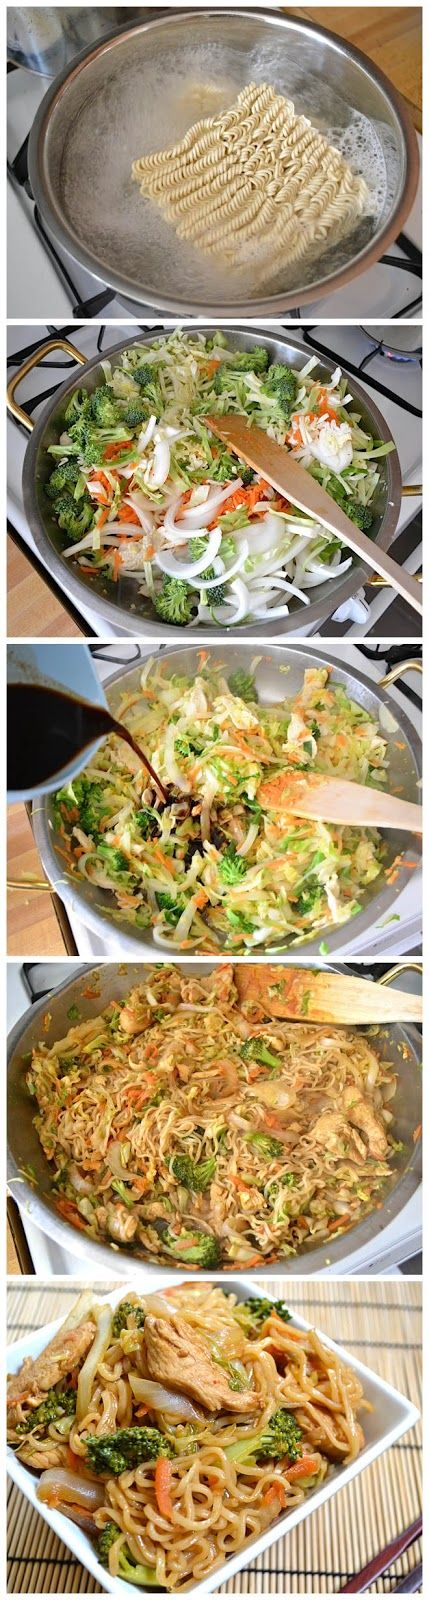 Chicken Yakisoba. Looks yummy!